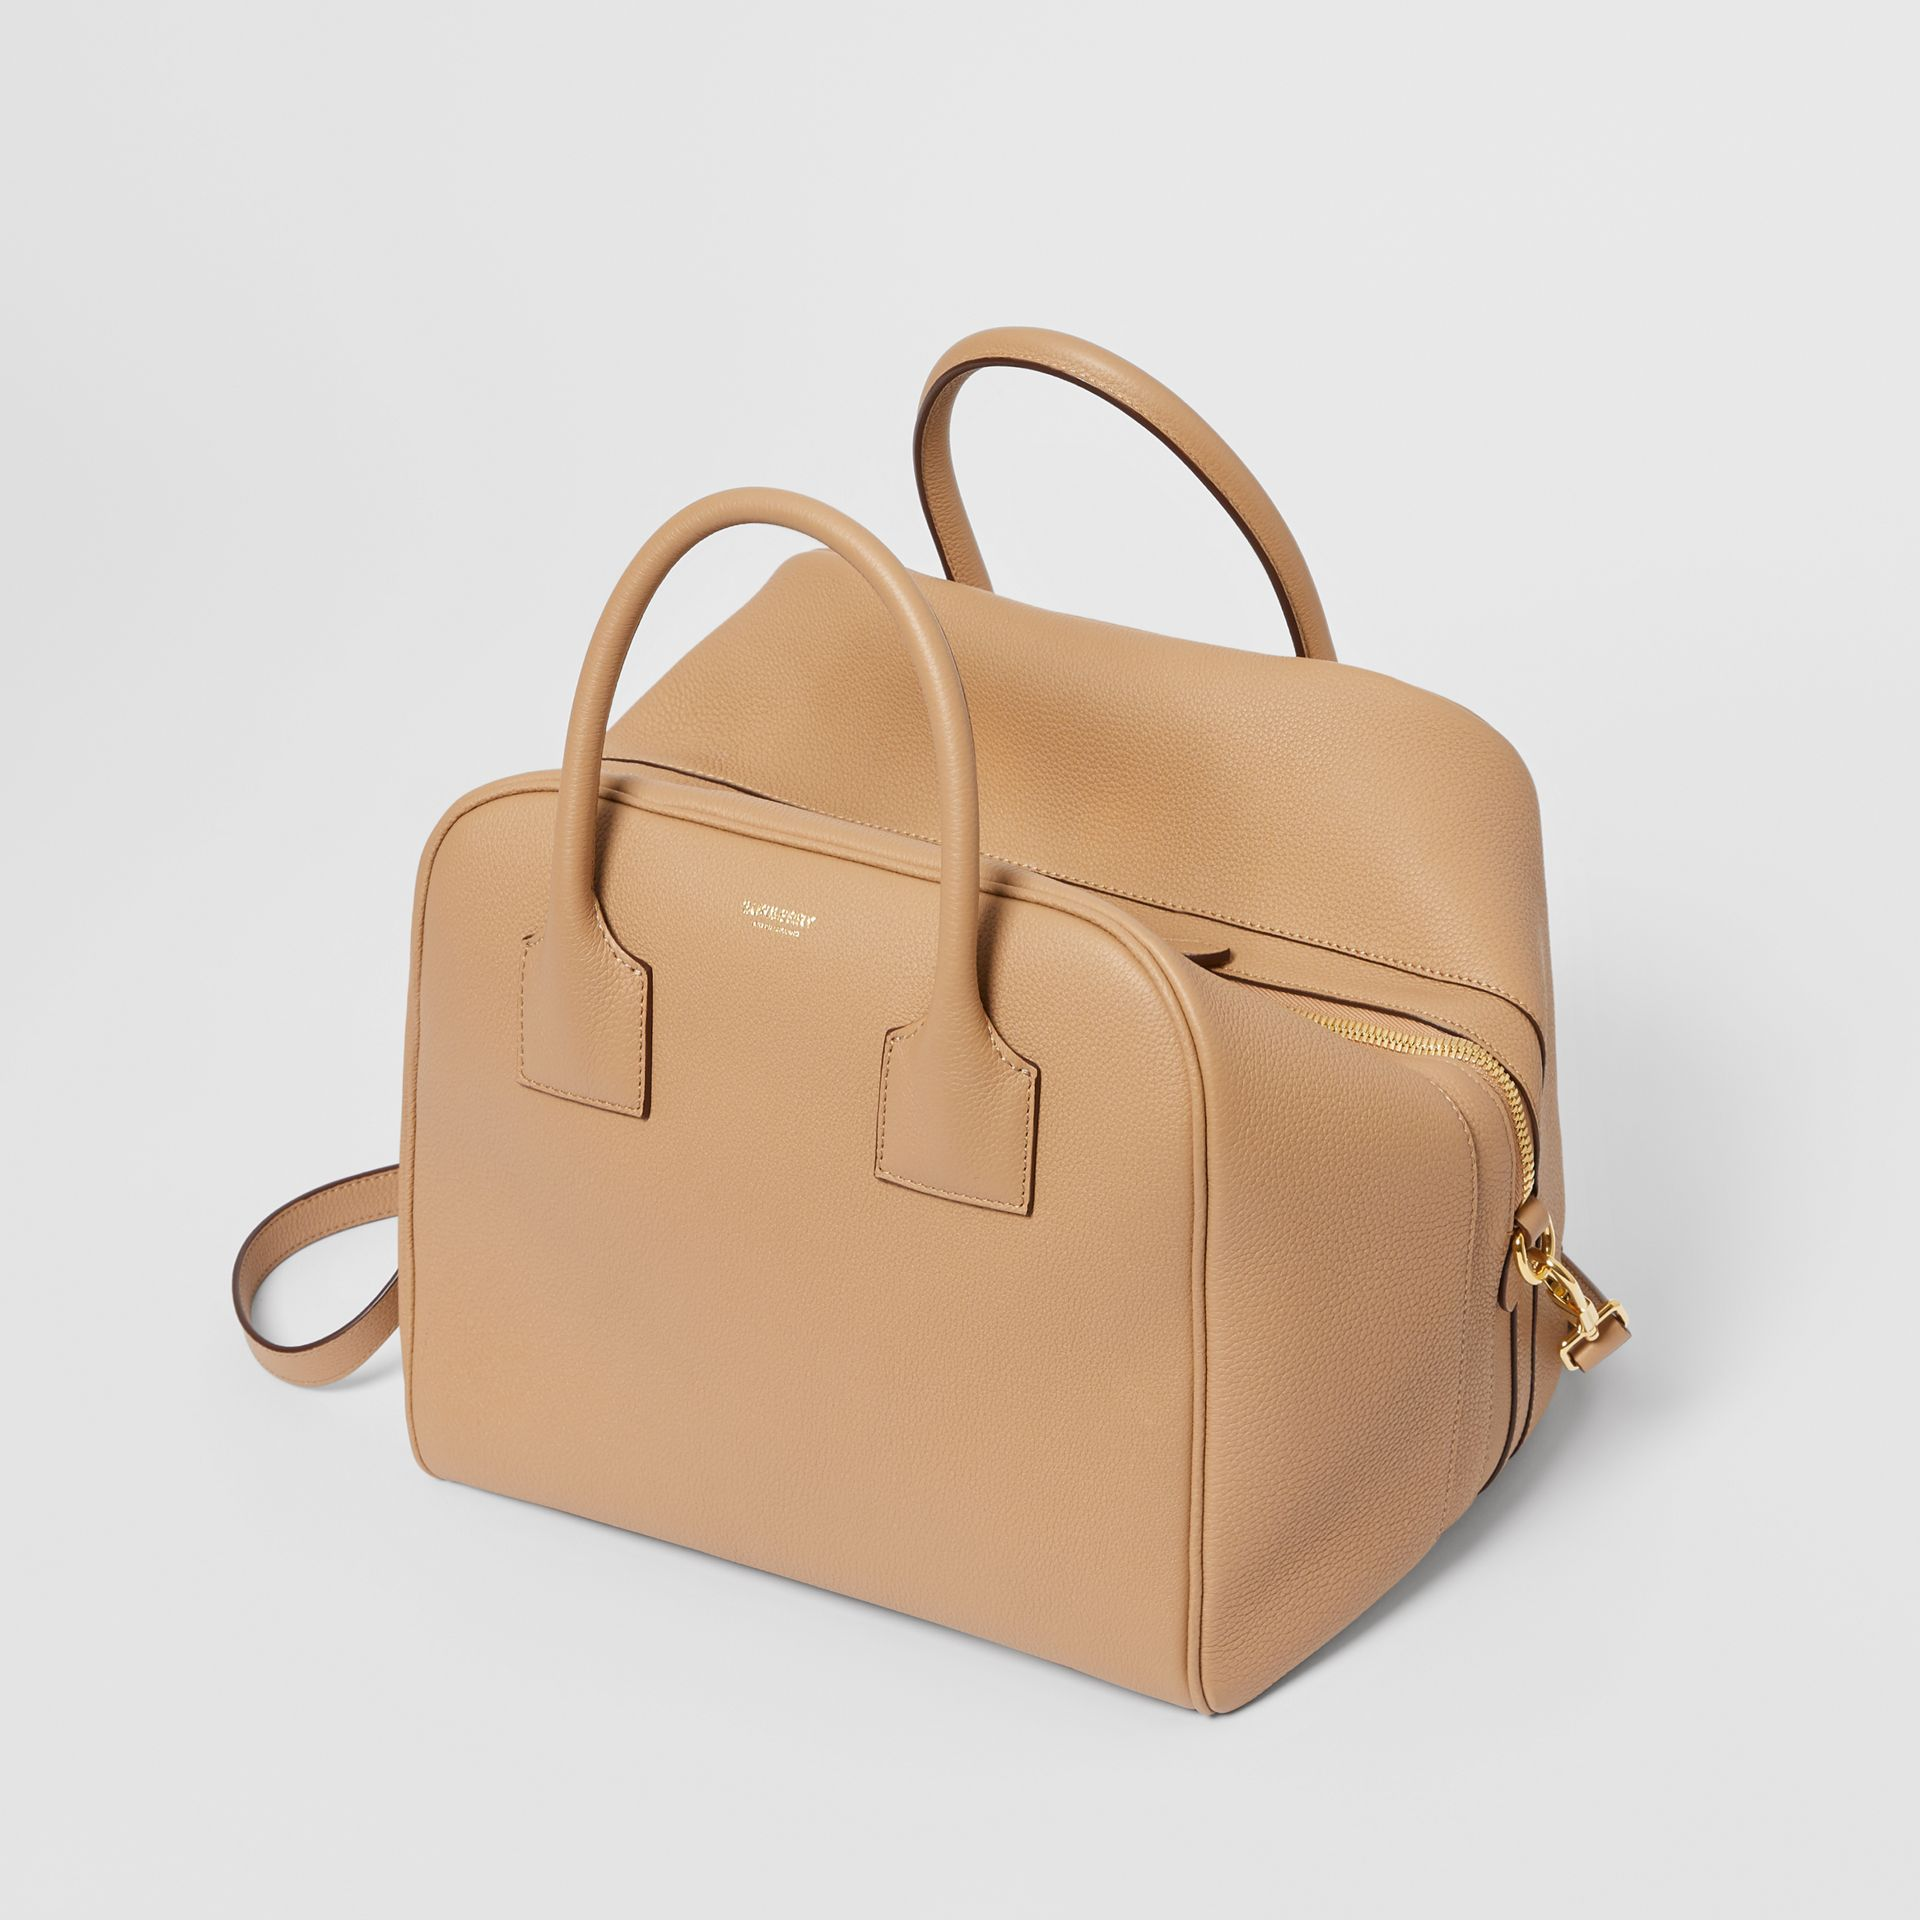 Medium Leather Cube Bag in Biscuit - Women | Burberry - gallery image 3